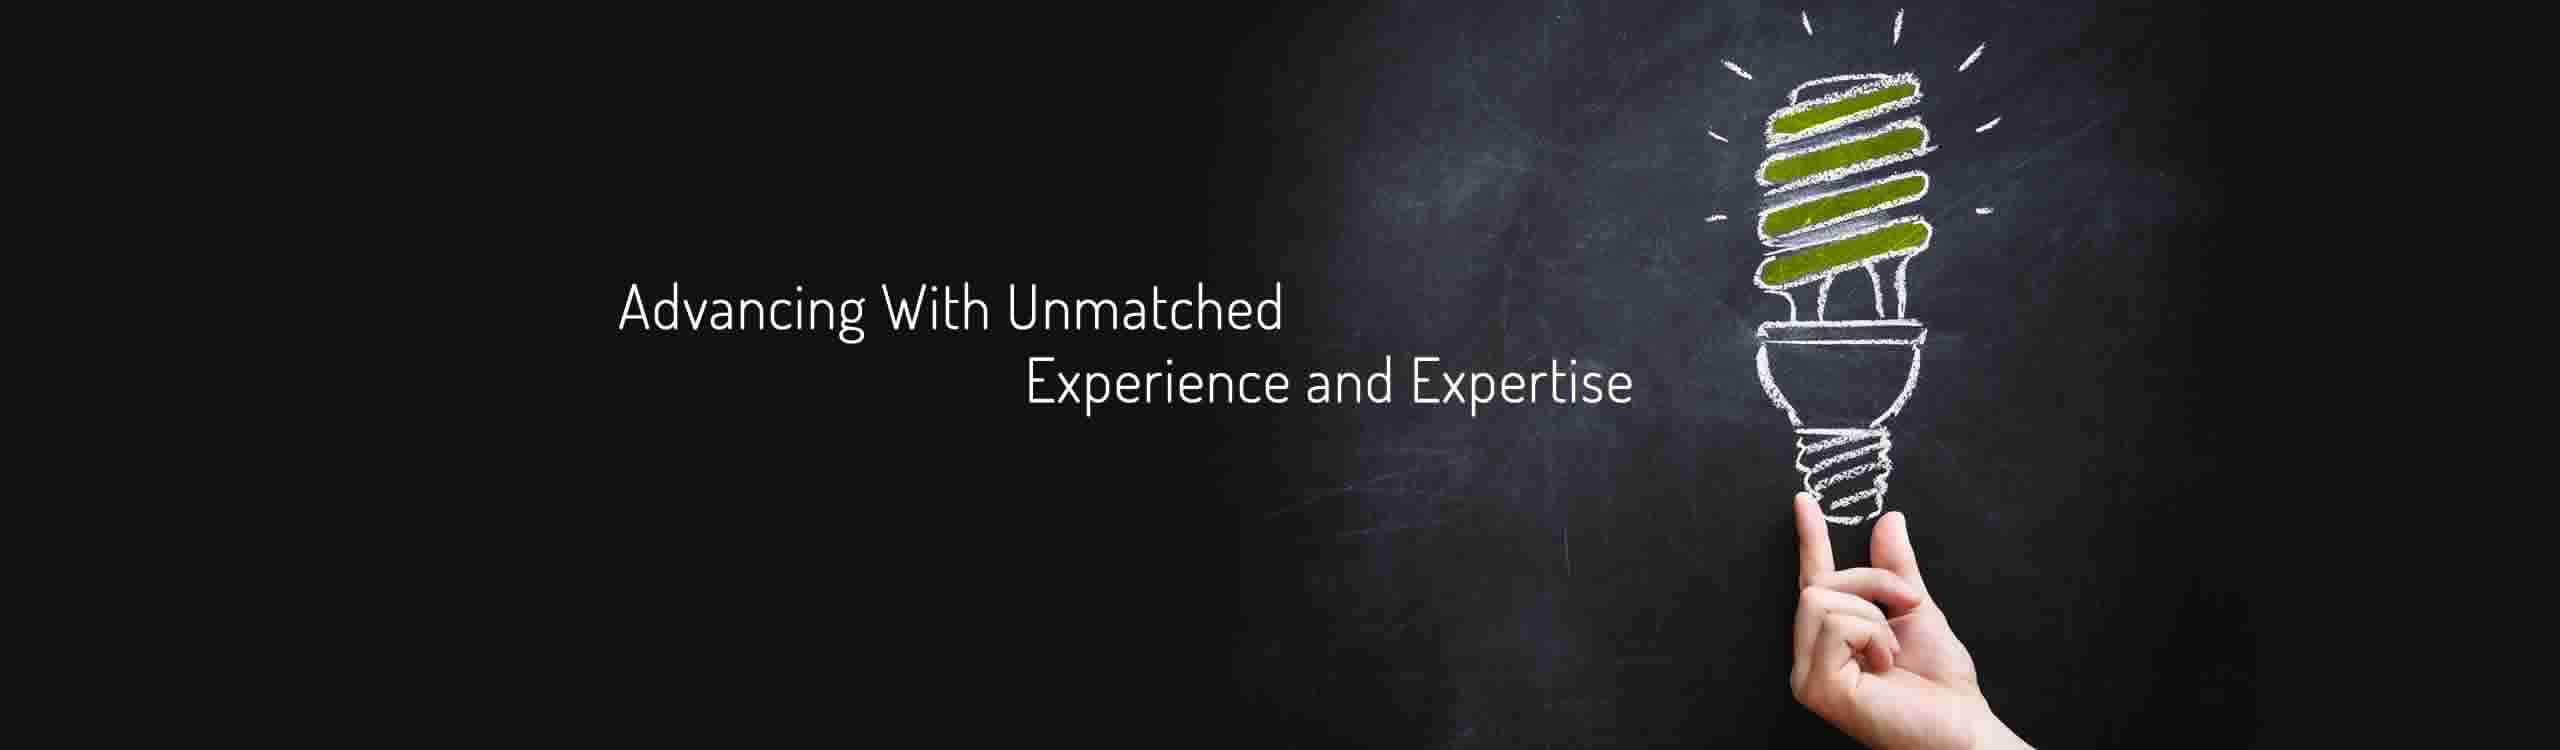 Advancing With Unmatched Experience and Expertise